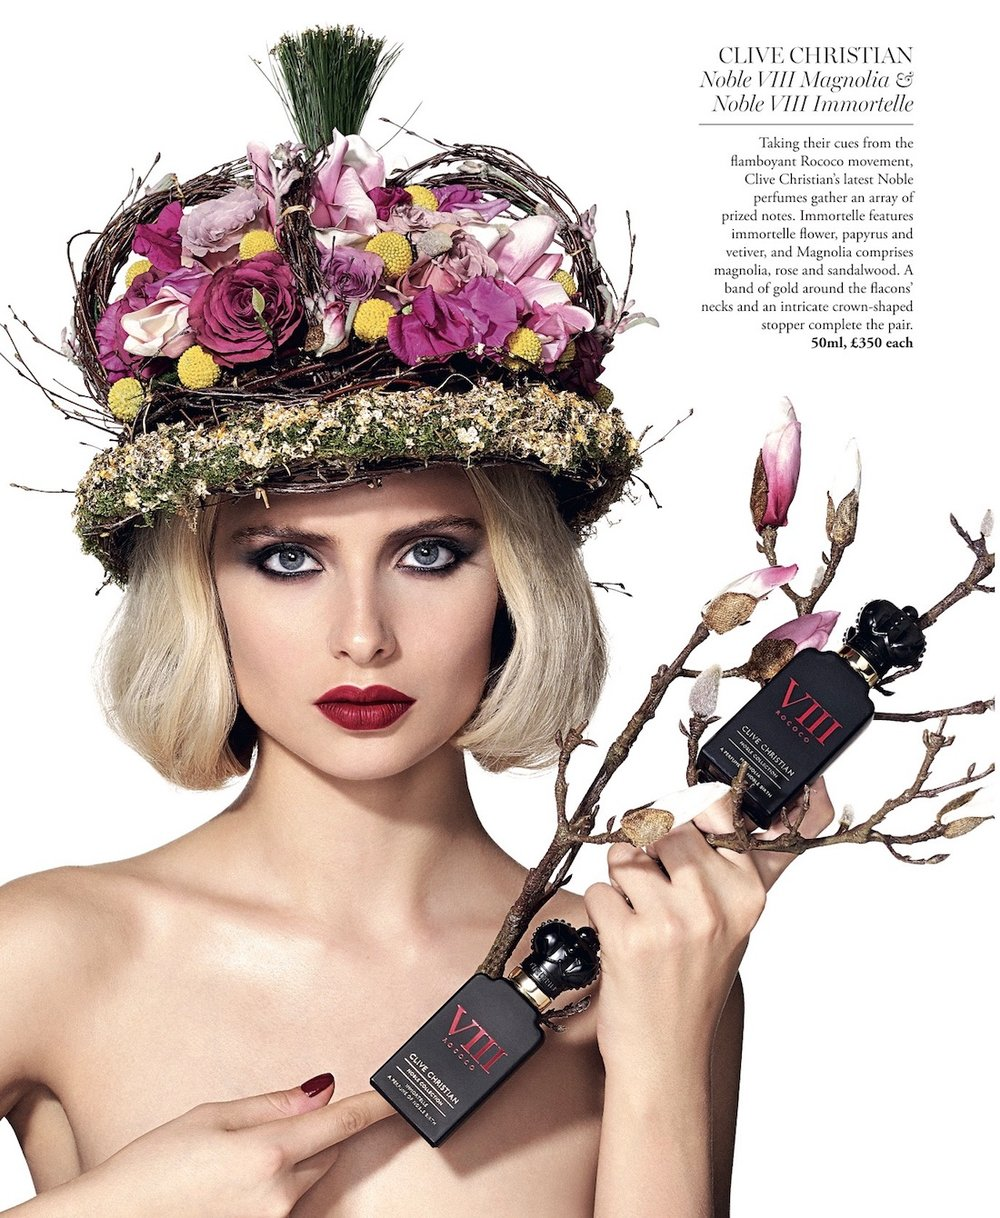 Fragrances+styled+by+Neill+Strain+florals+for+Harrods+Magazine.jpg